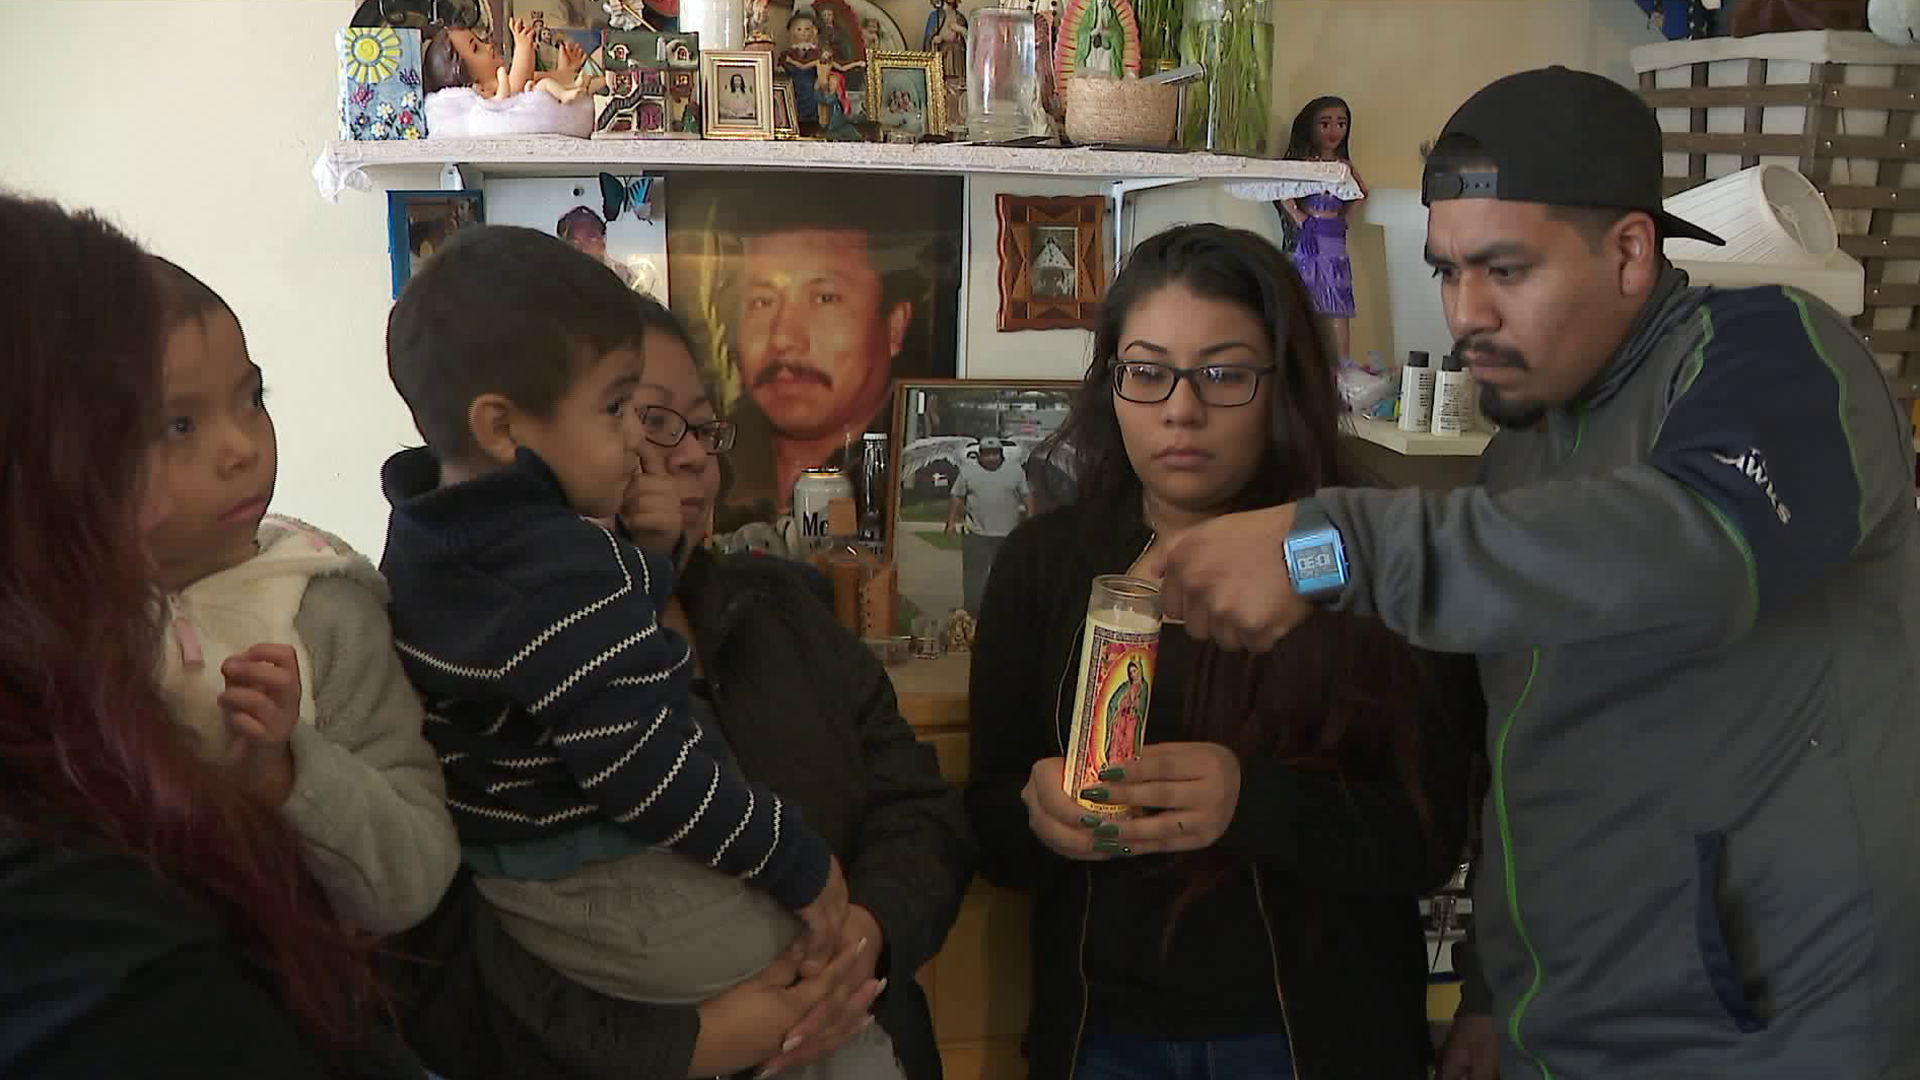 Lucio Garcia's family light a candle for a shrine set up in his honor on Jan. 11, 2018. (Credit: KTLA)